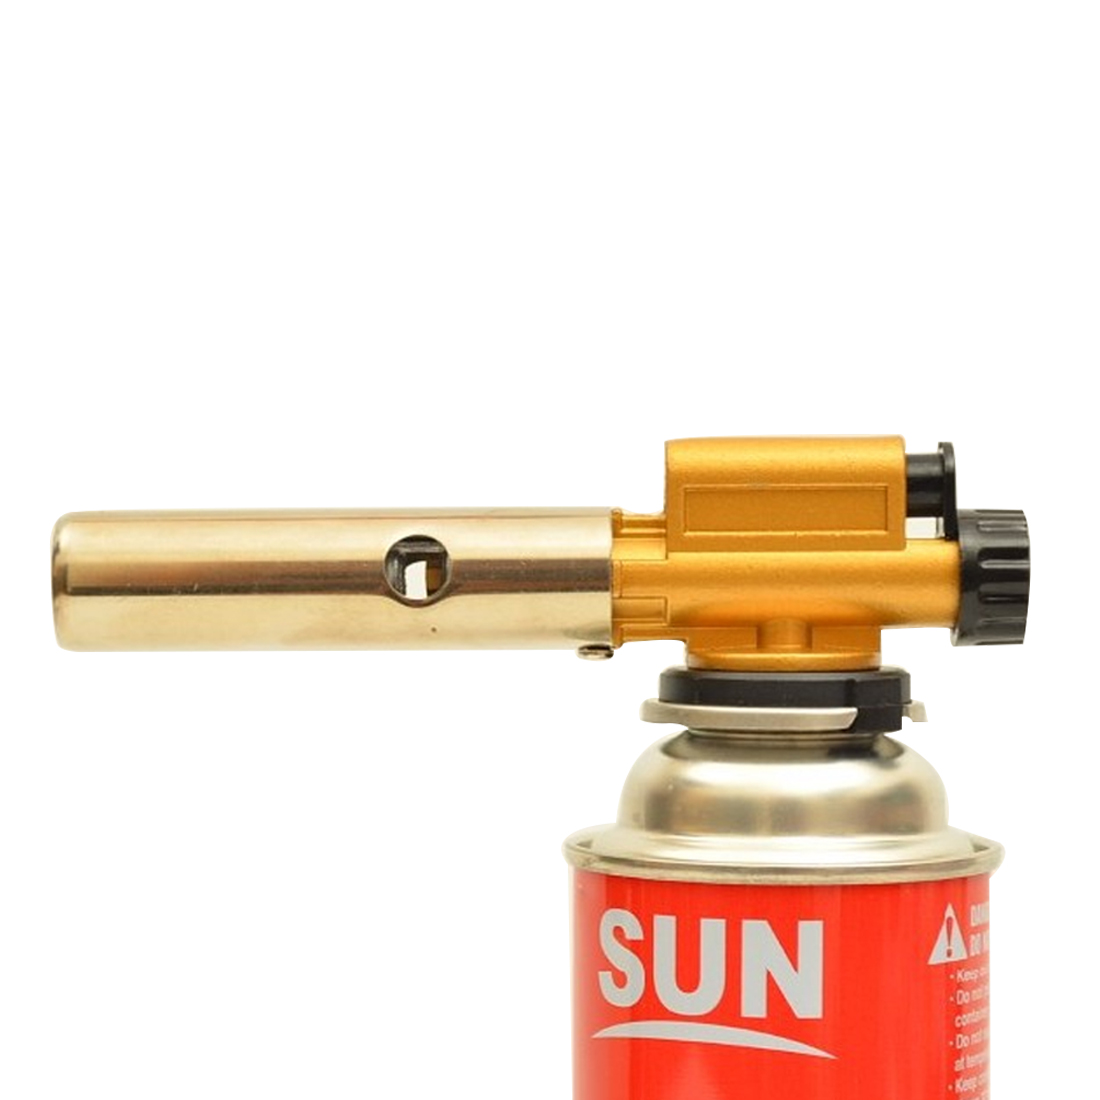 Welding Equipment Electronic Ignition Copper Flame Gas Burners Gun Maker Torch Lighter For Outdoor Camping Picnic BBQ